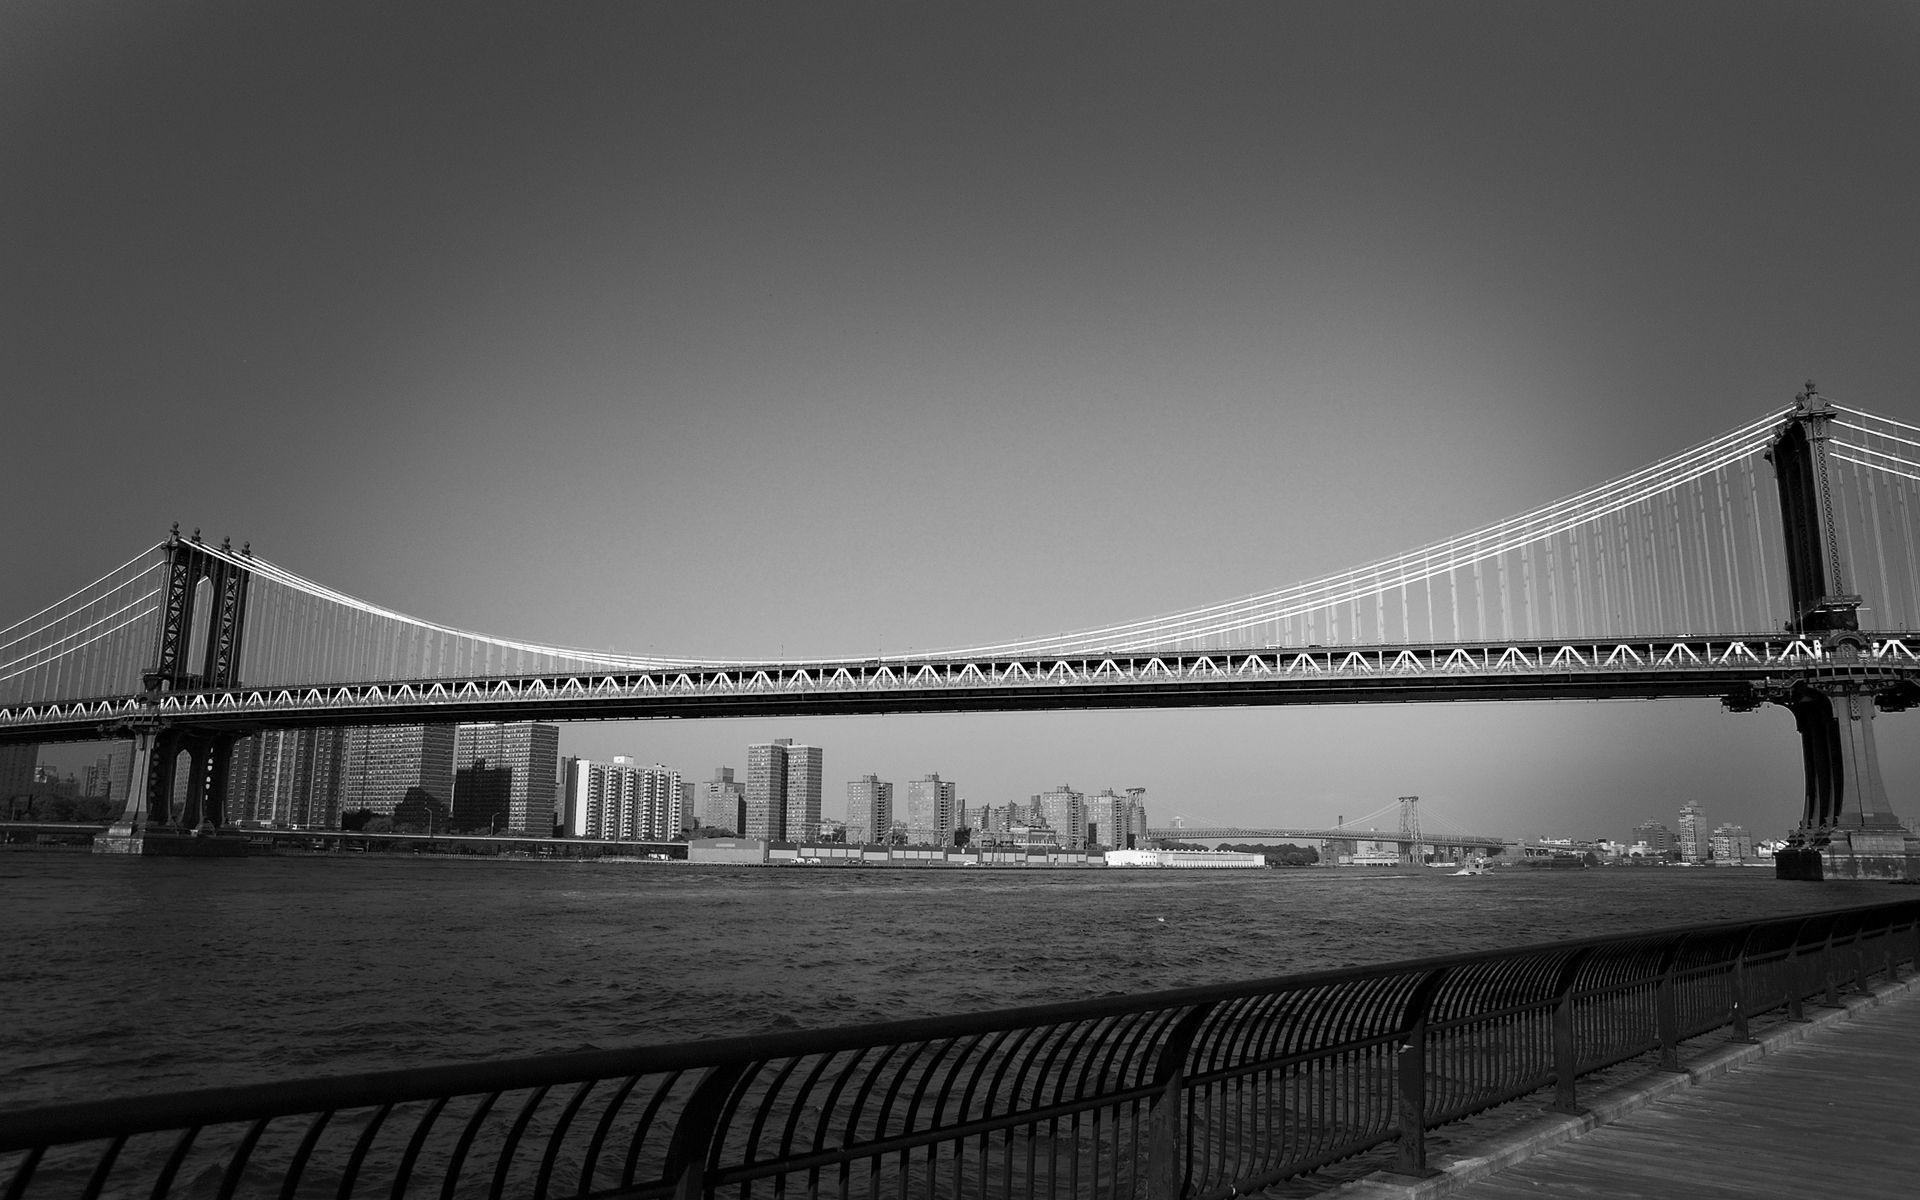 Bridge Wallpapers: 52 HD Black And White Wallpaper For Download